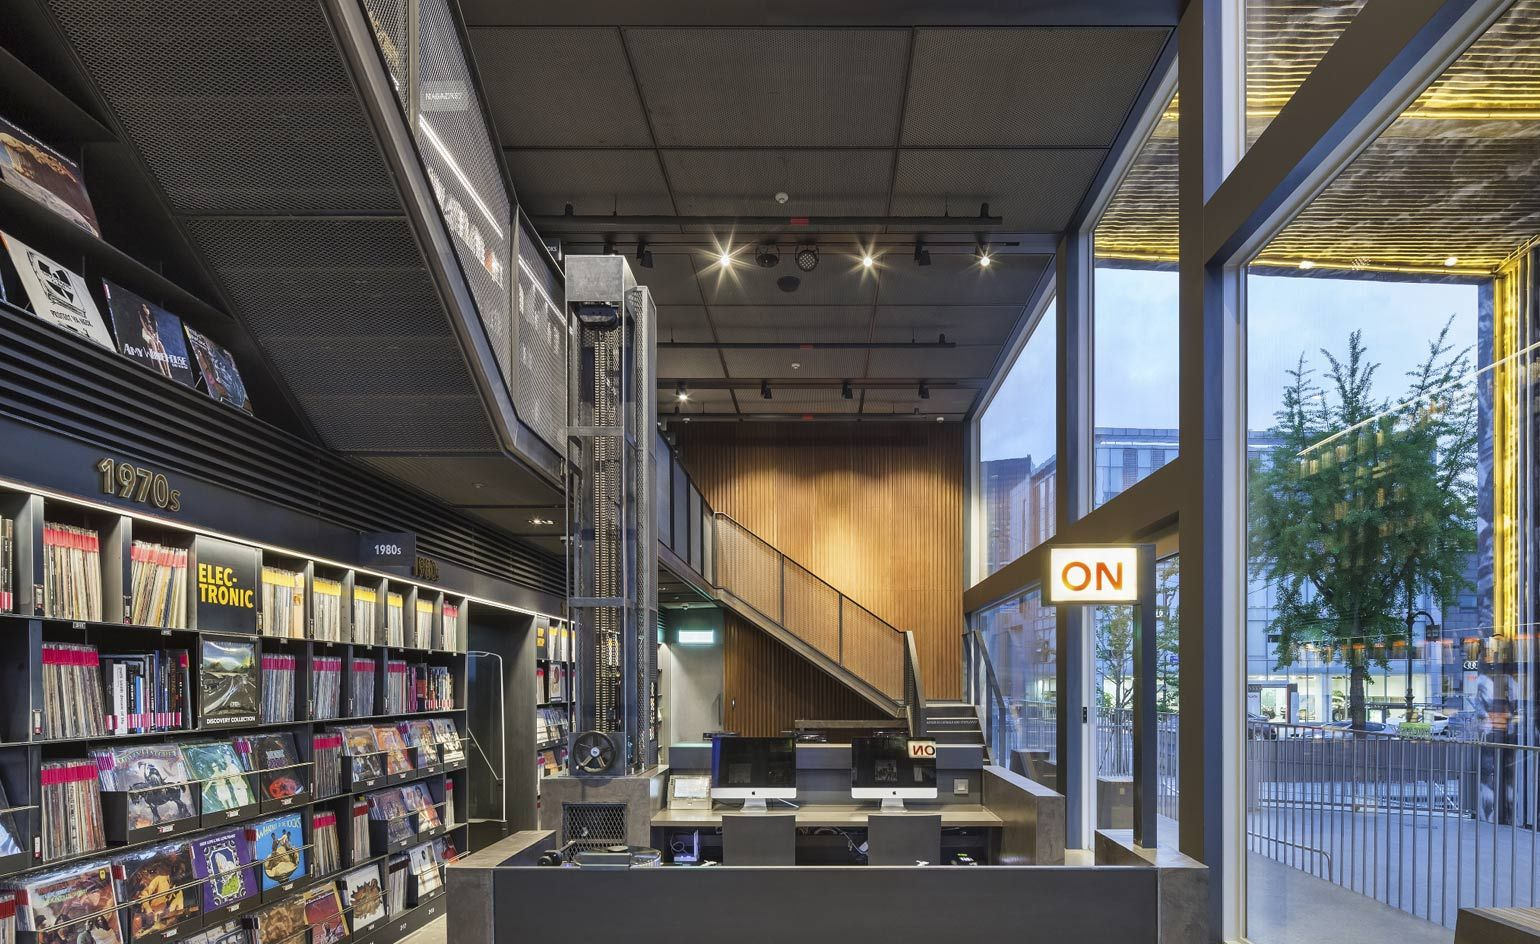 Library Architecture And Design A Worldwide Guide 조명